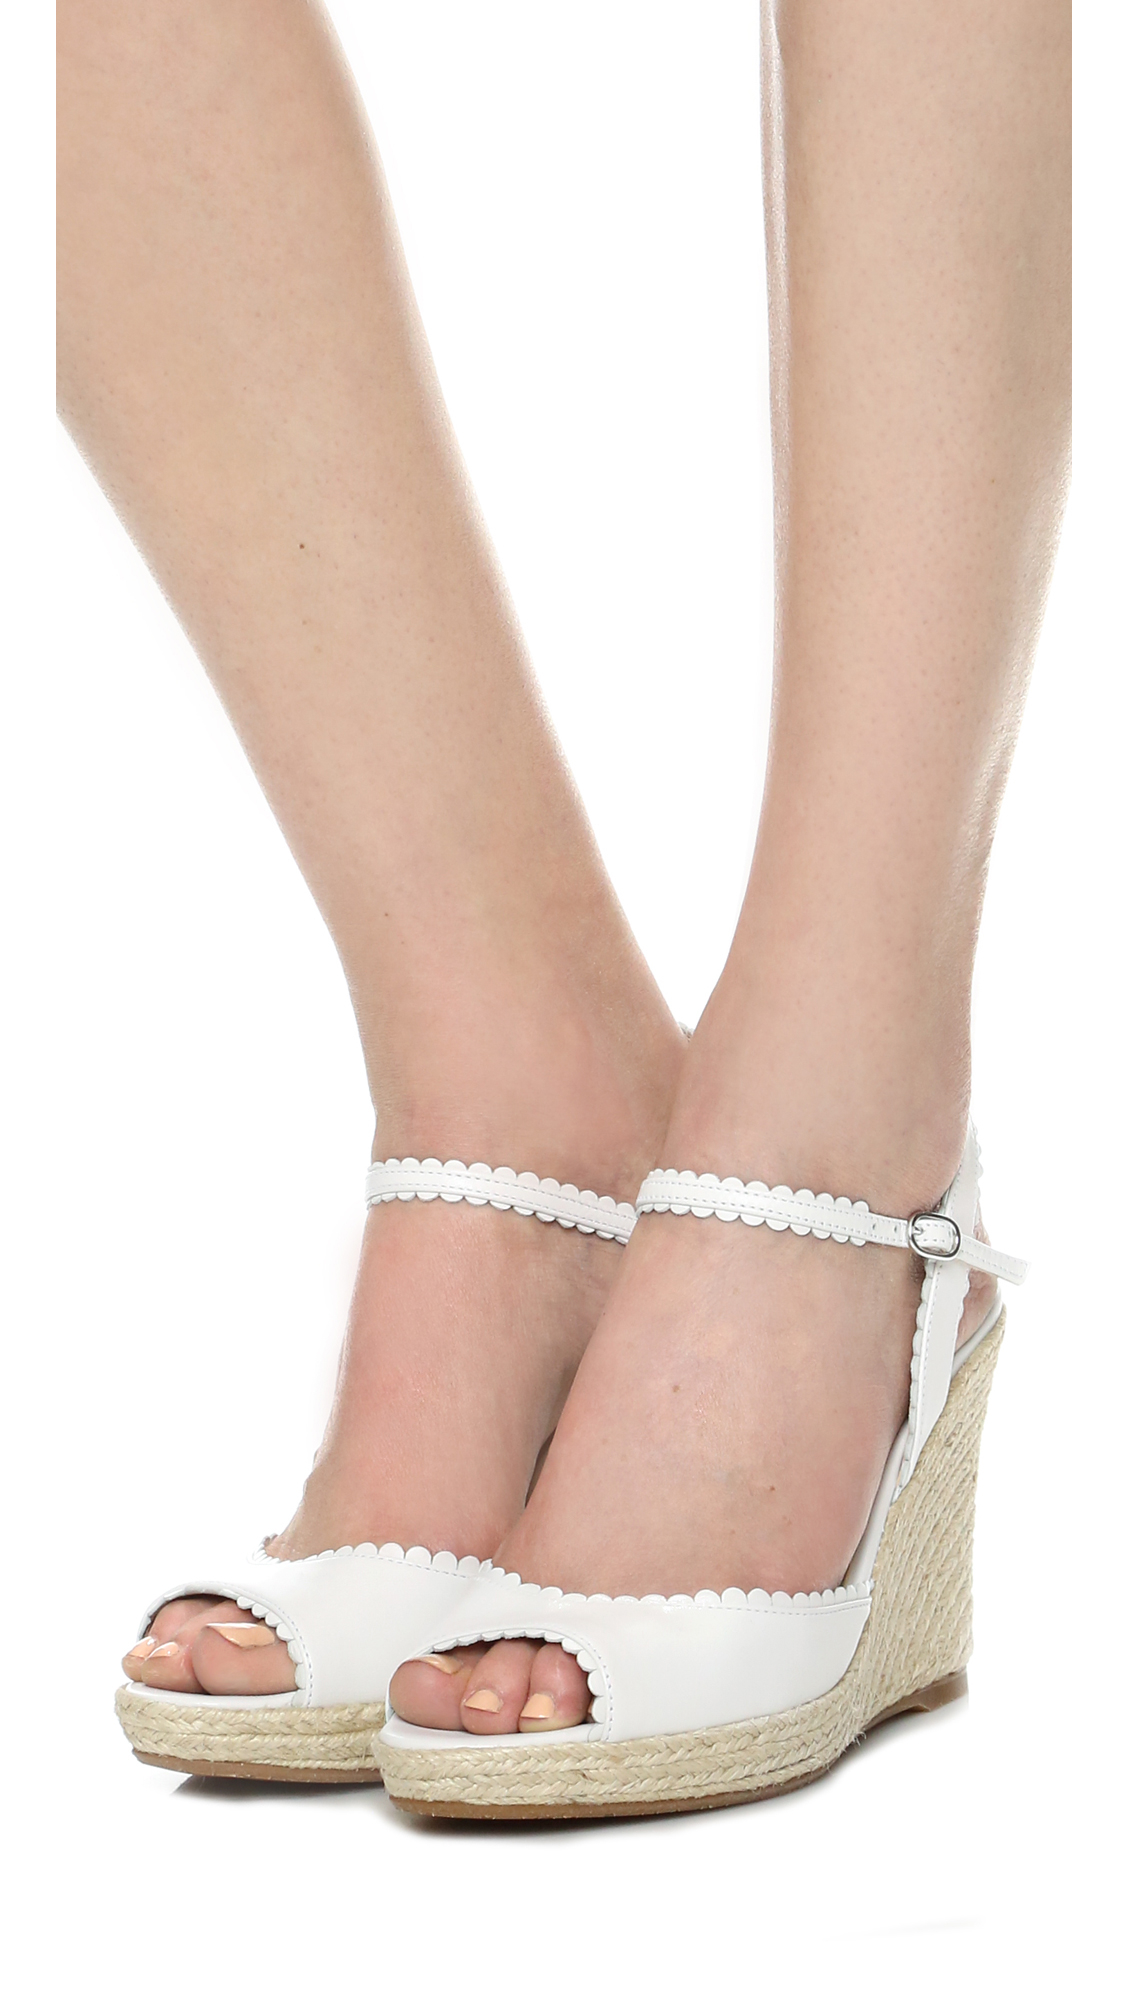 Lyst - L.k.bennett Seve Wedge Sandals in White